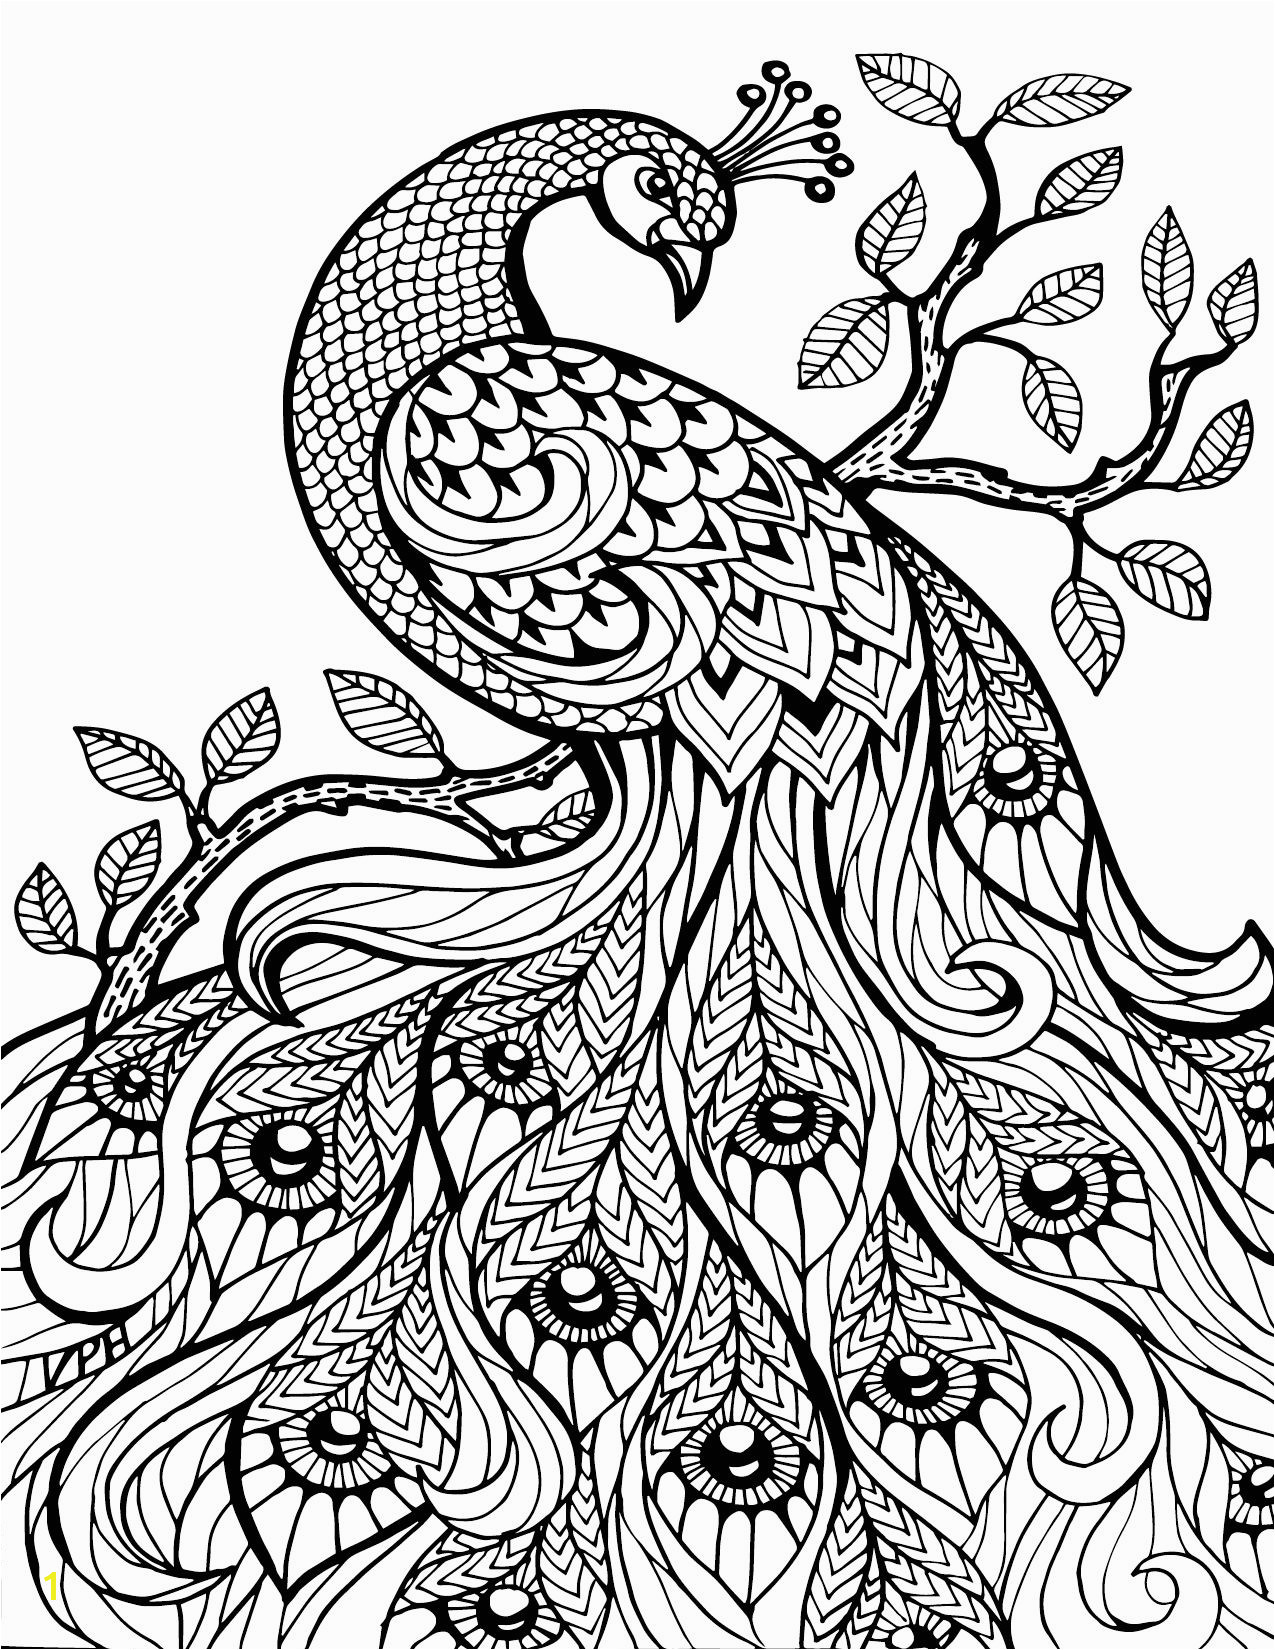 Free Printable Coloring Pages For Adults ly Image 36 Art Davlin Publishing adultcoloring